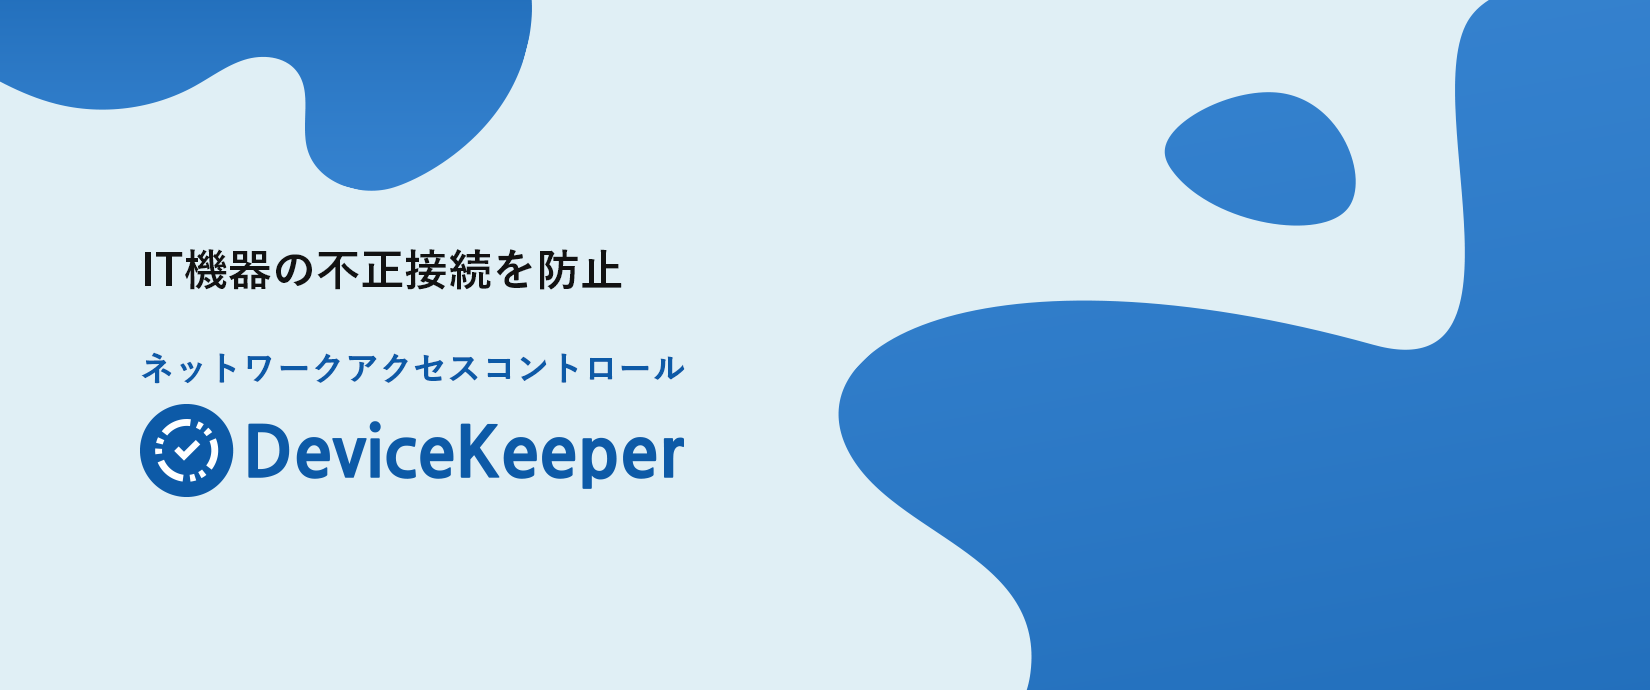 DeviceKeeper